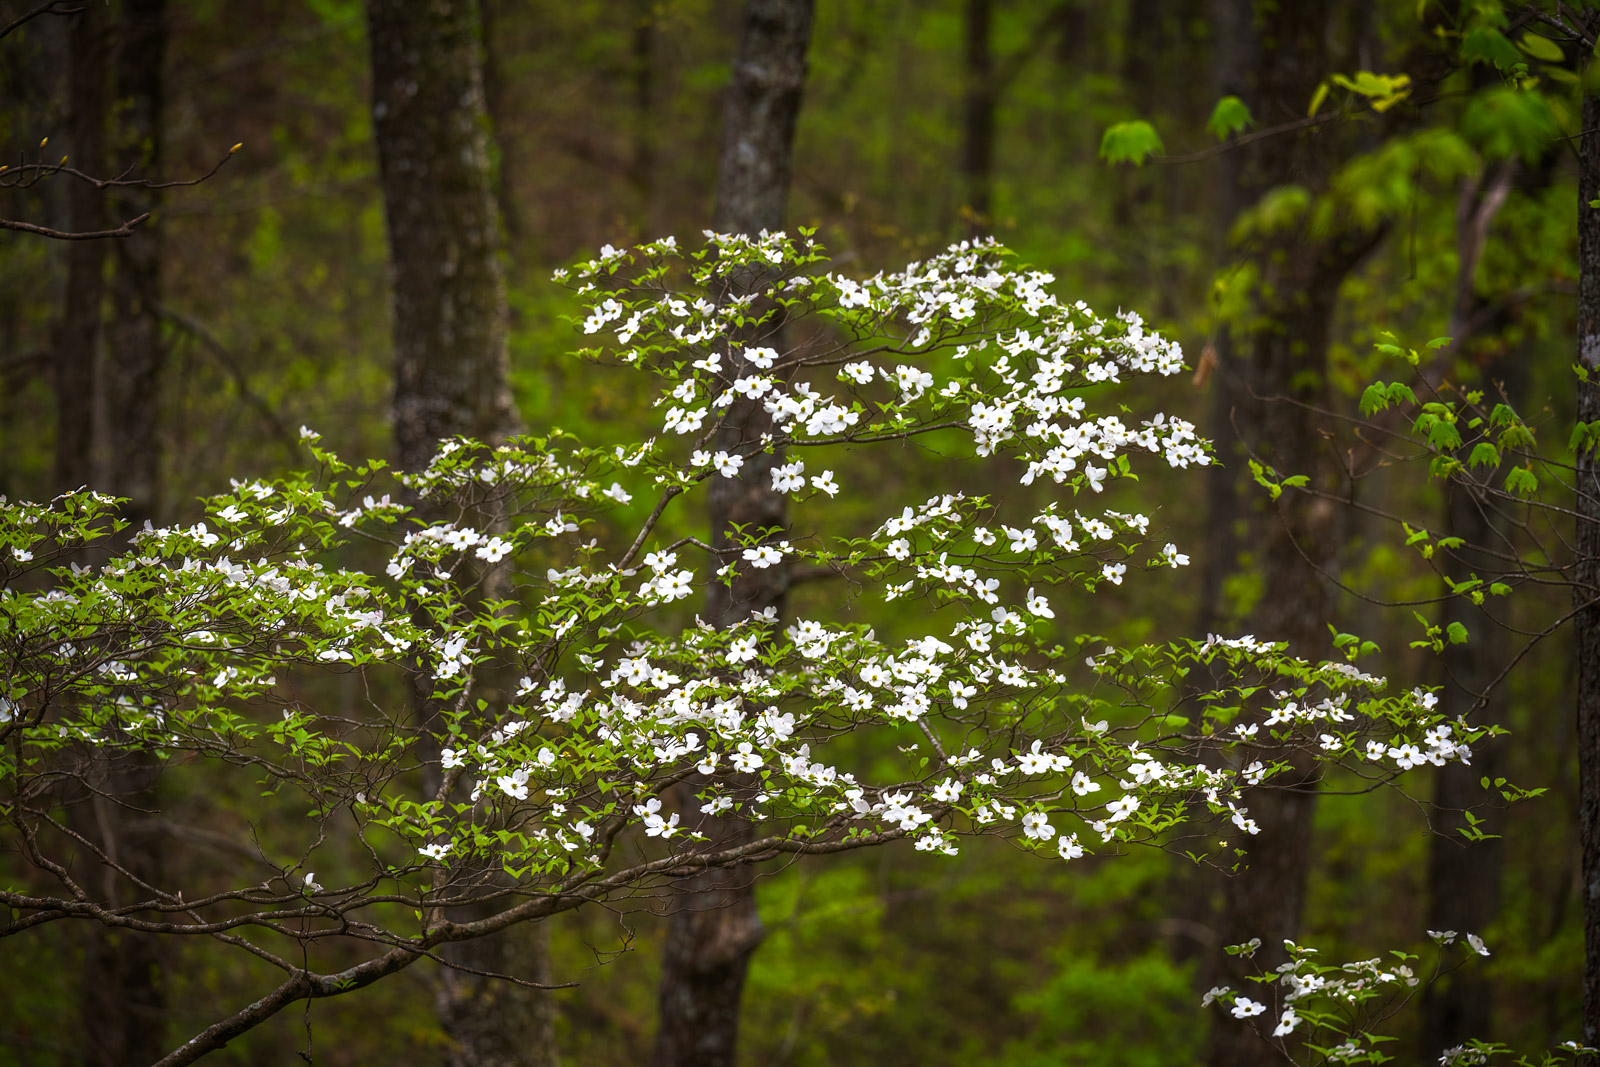 A Limited Edition, Fine Art photograph of a Dogwood tree in the forest with it's bright white blooms in Great Smoky Mountains...